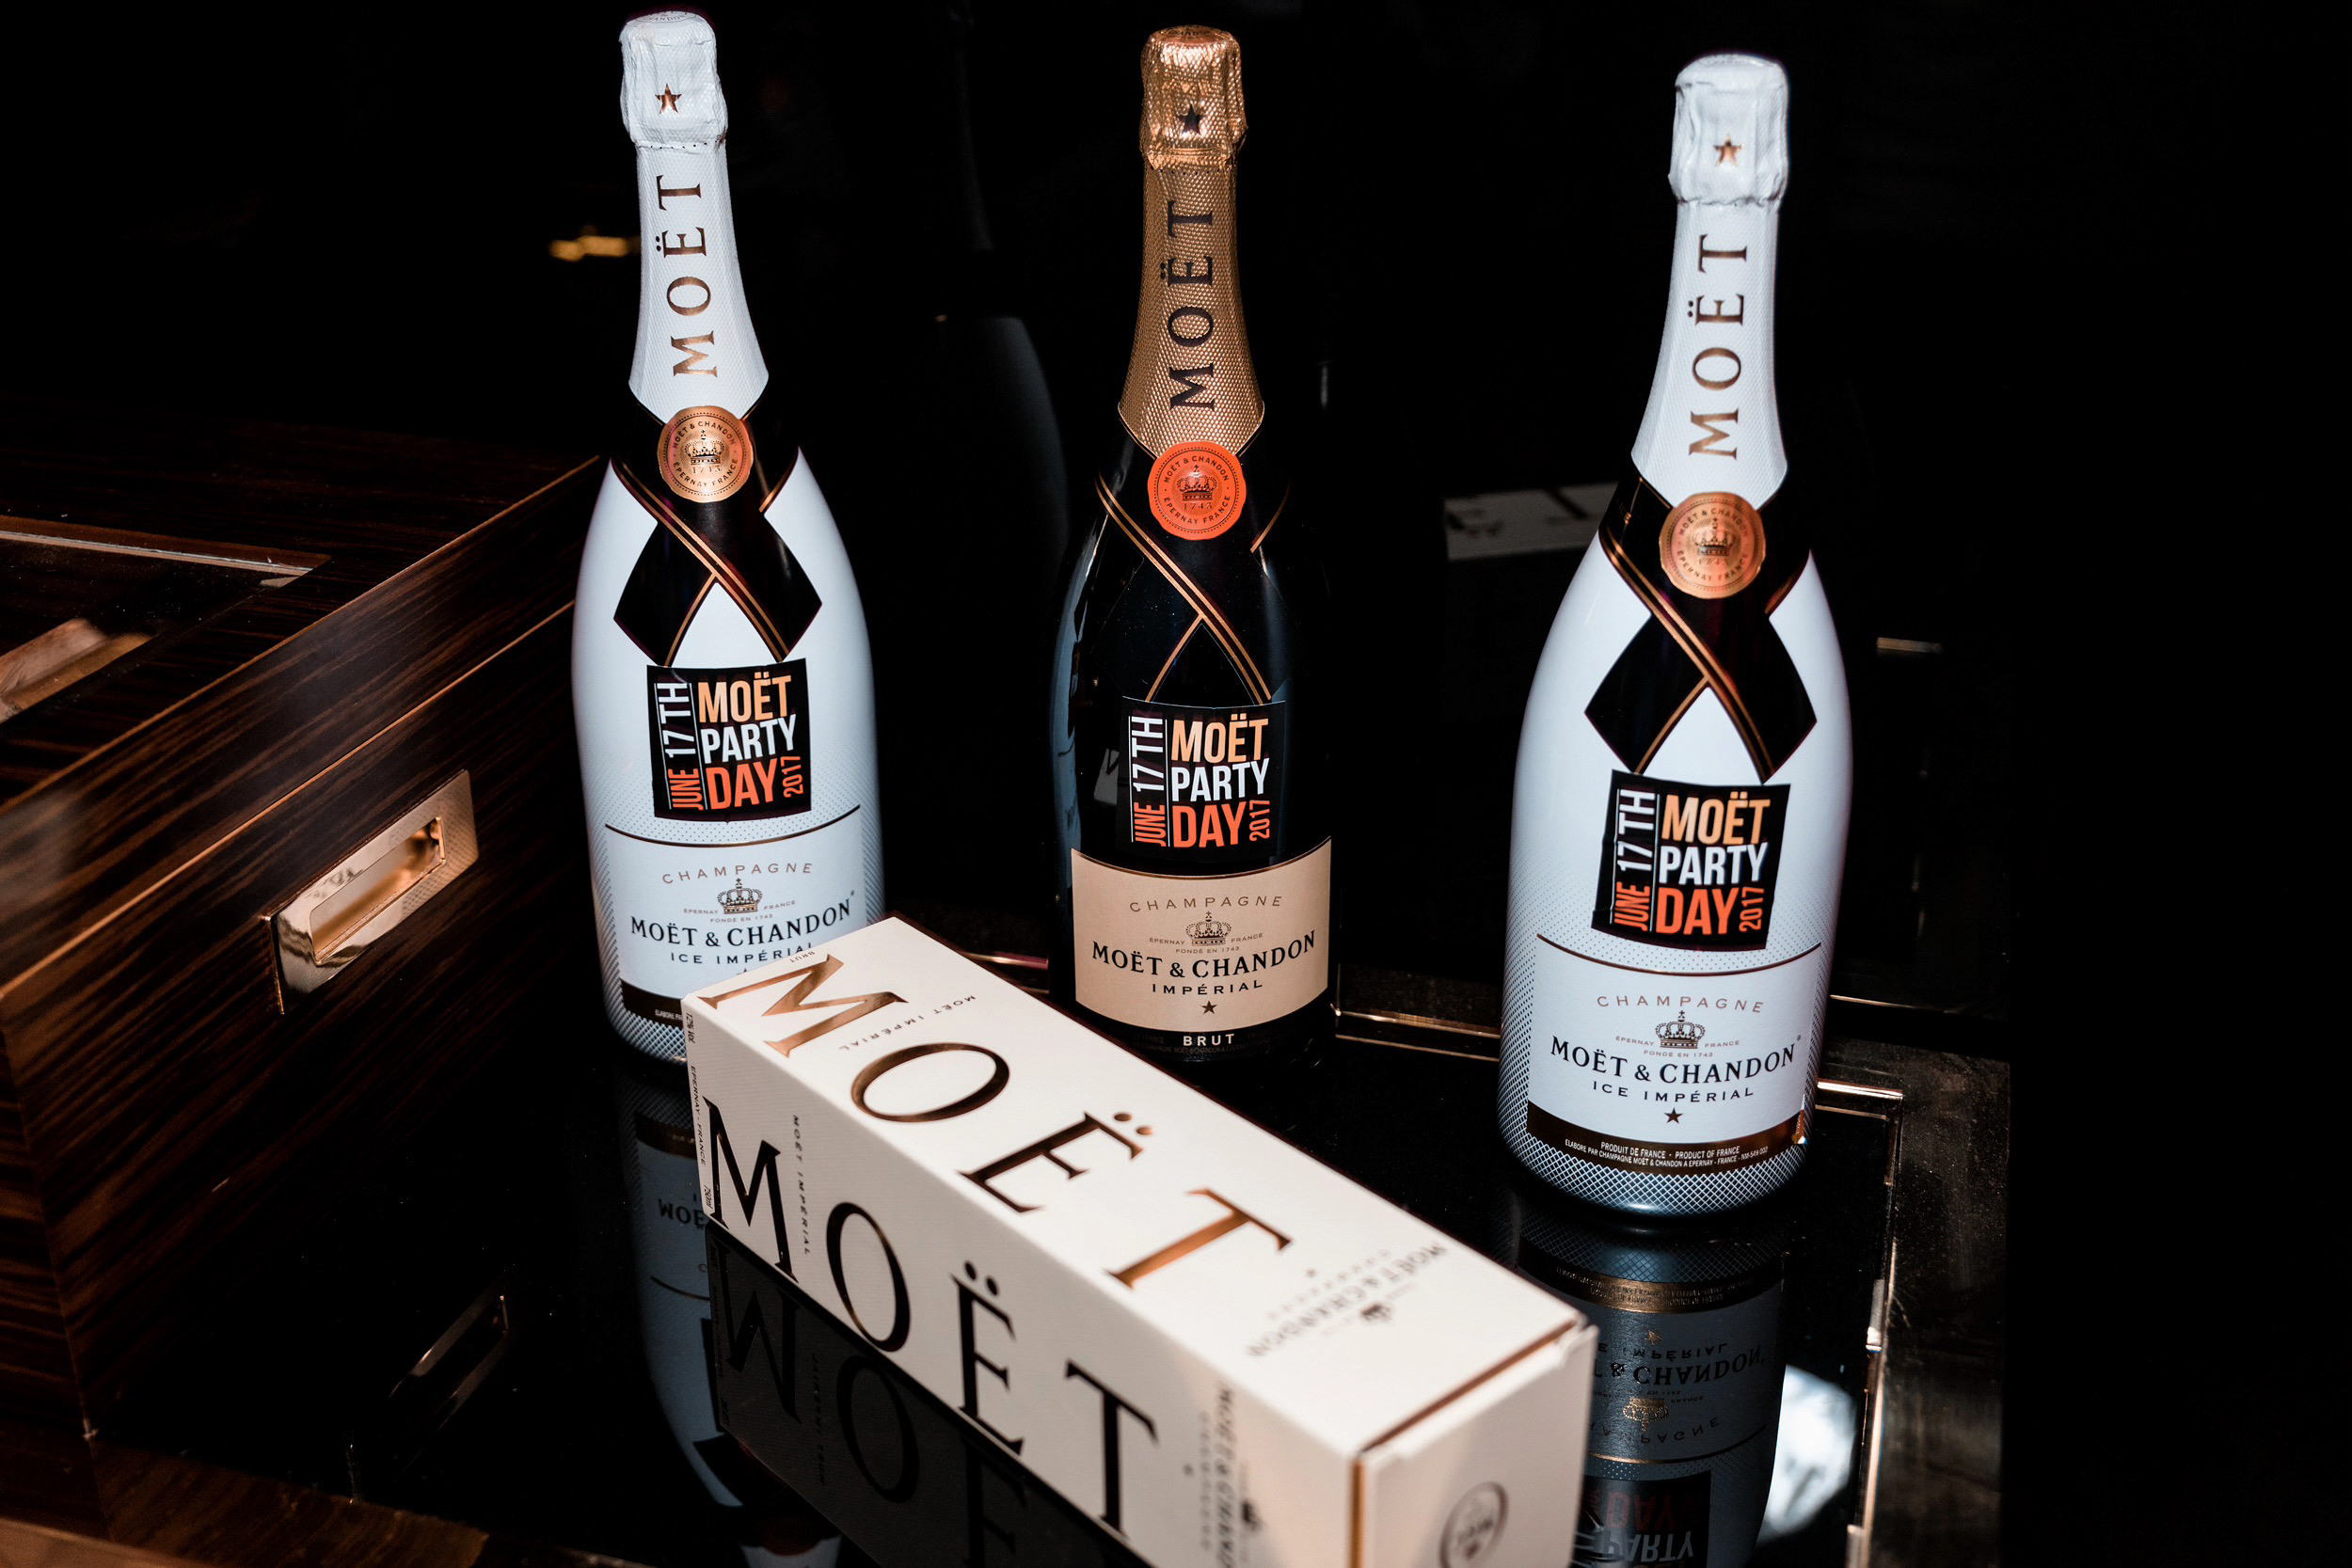 moet party day 15